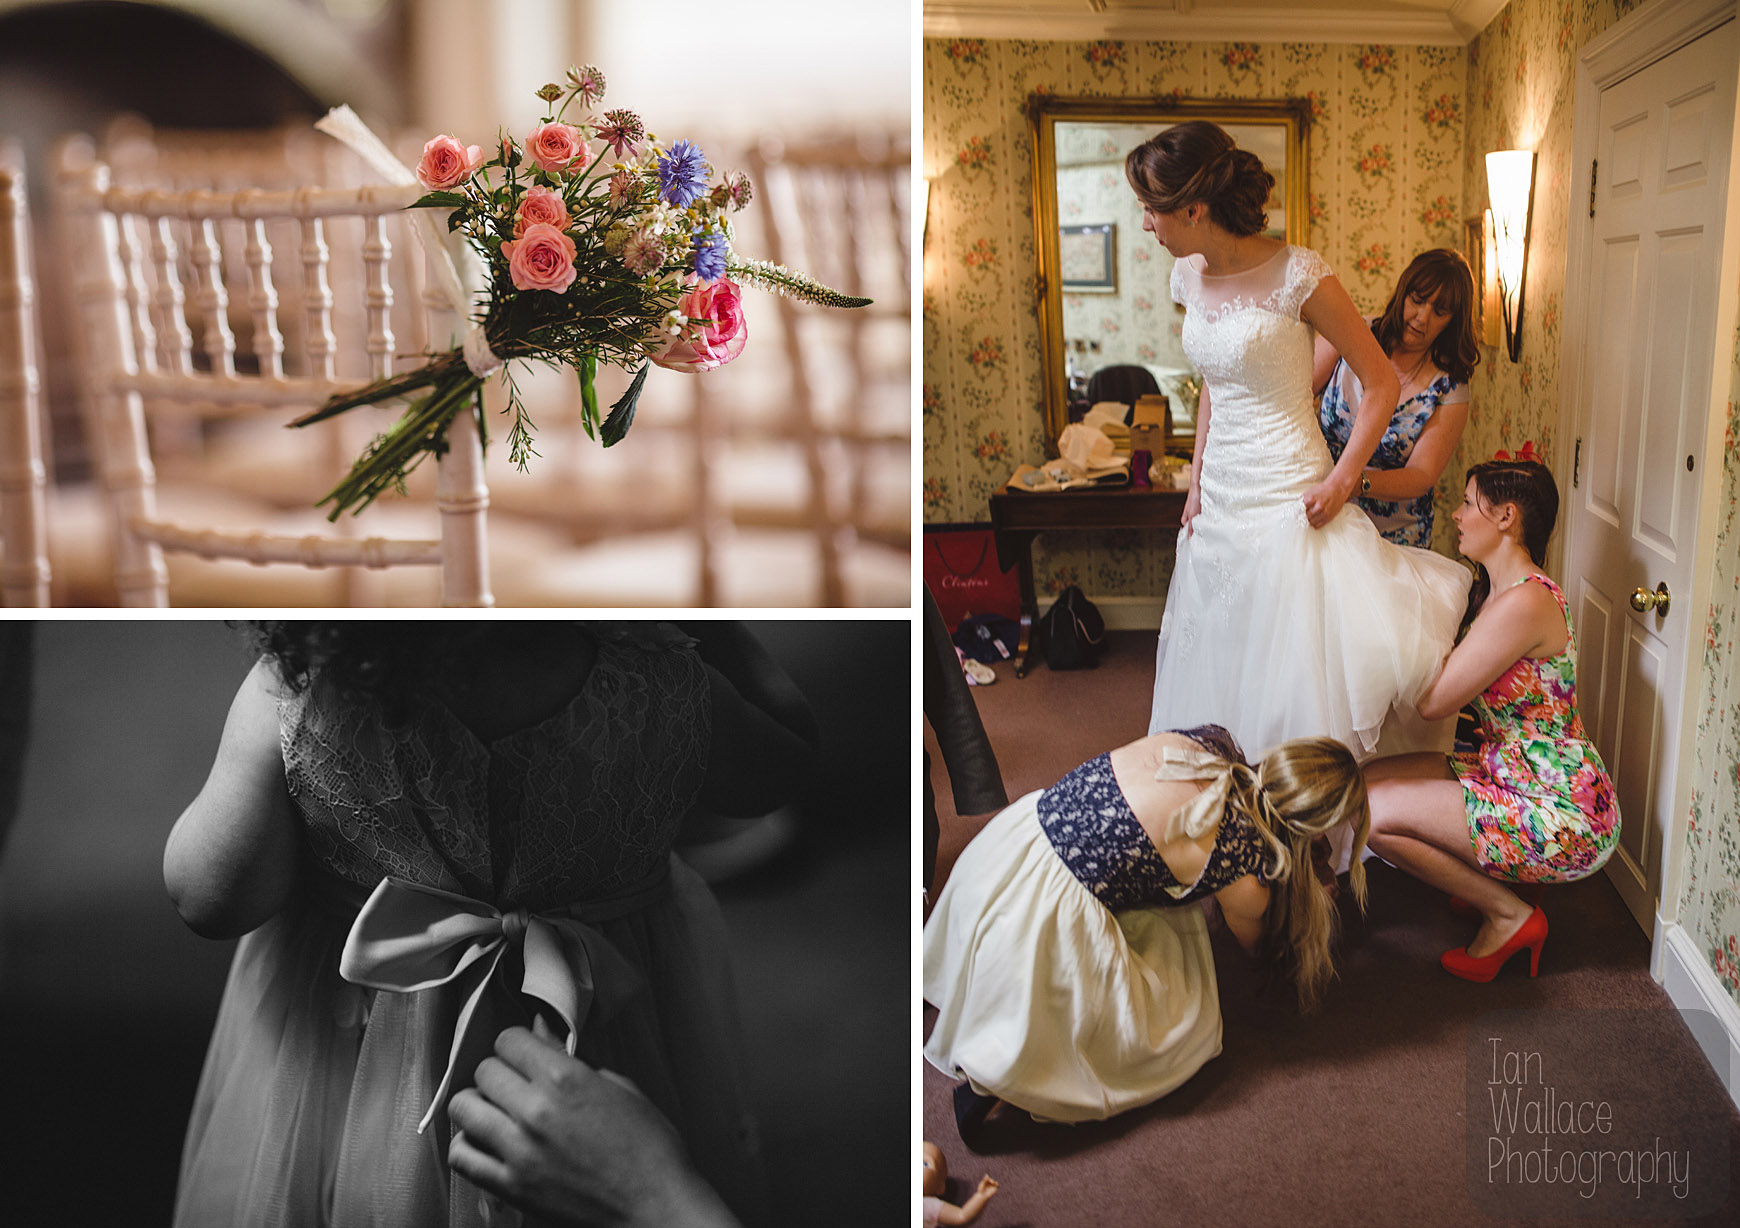 Finishing touches during wedding preparations